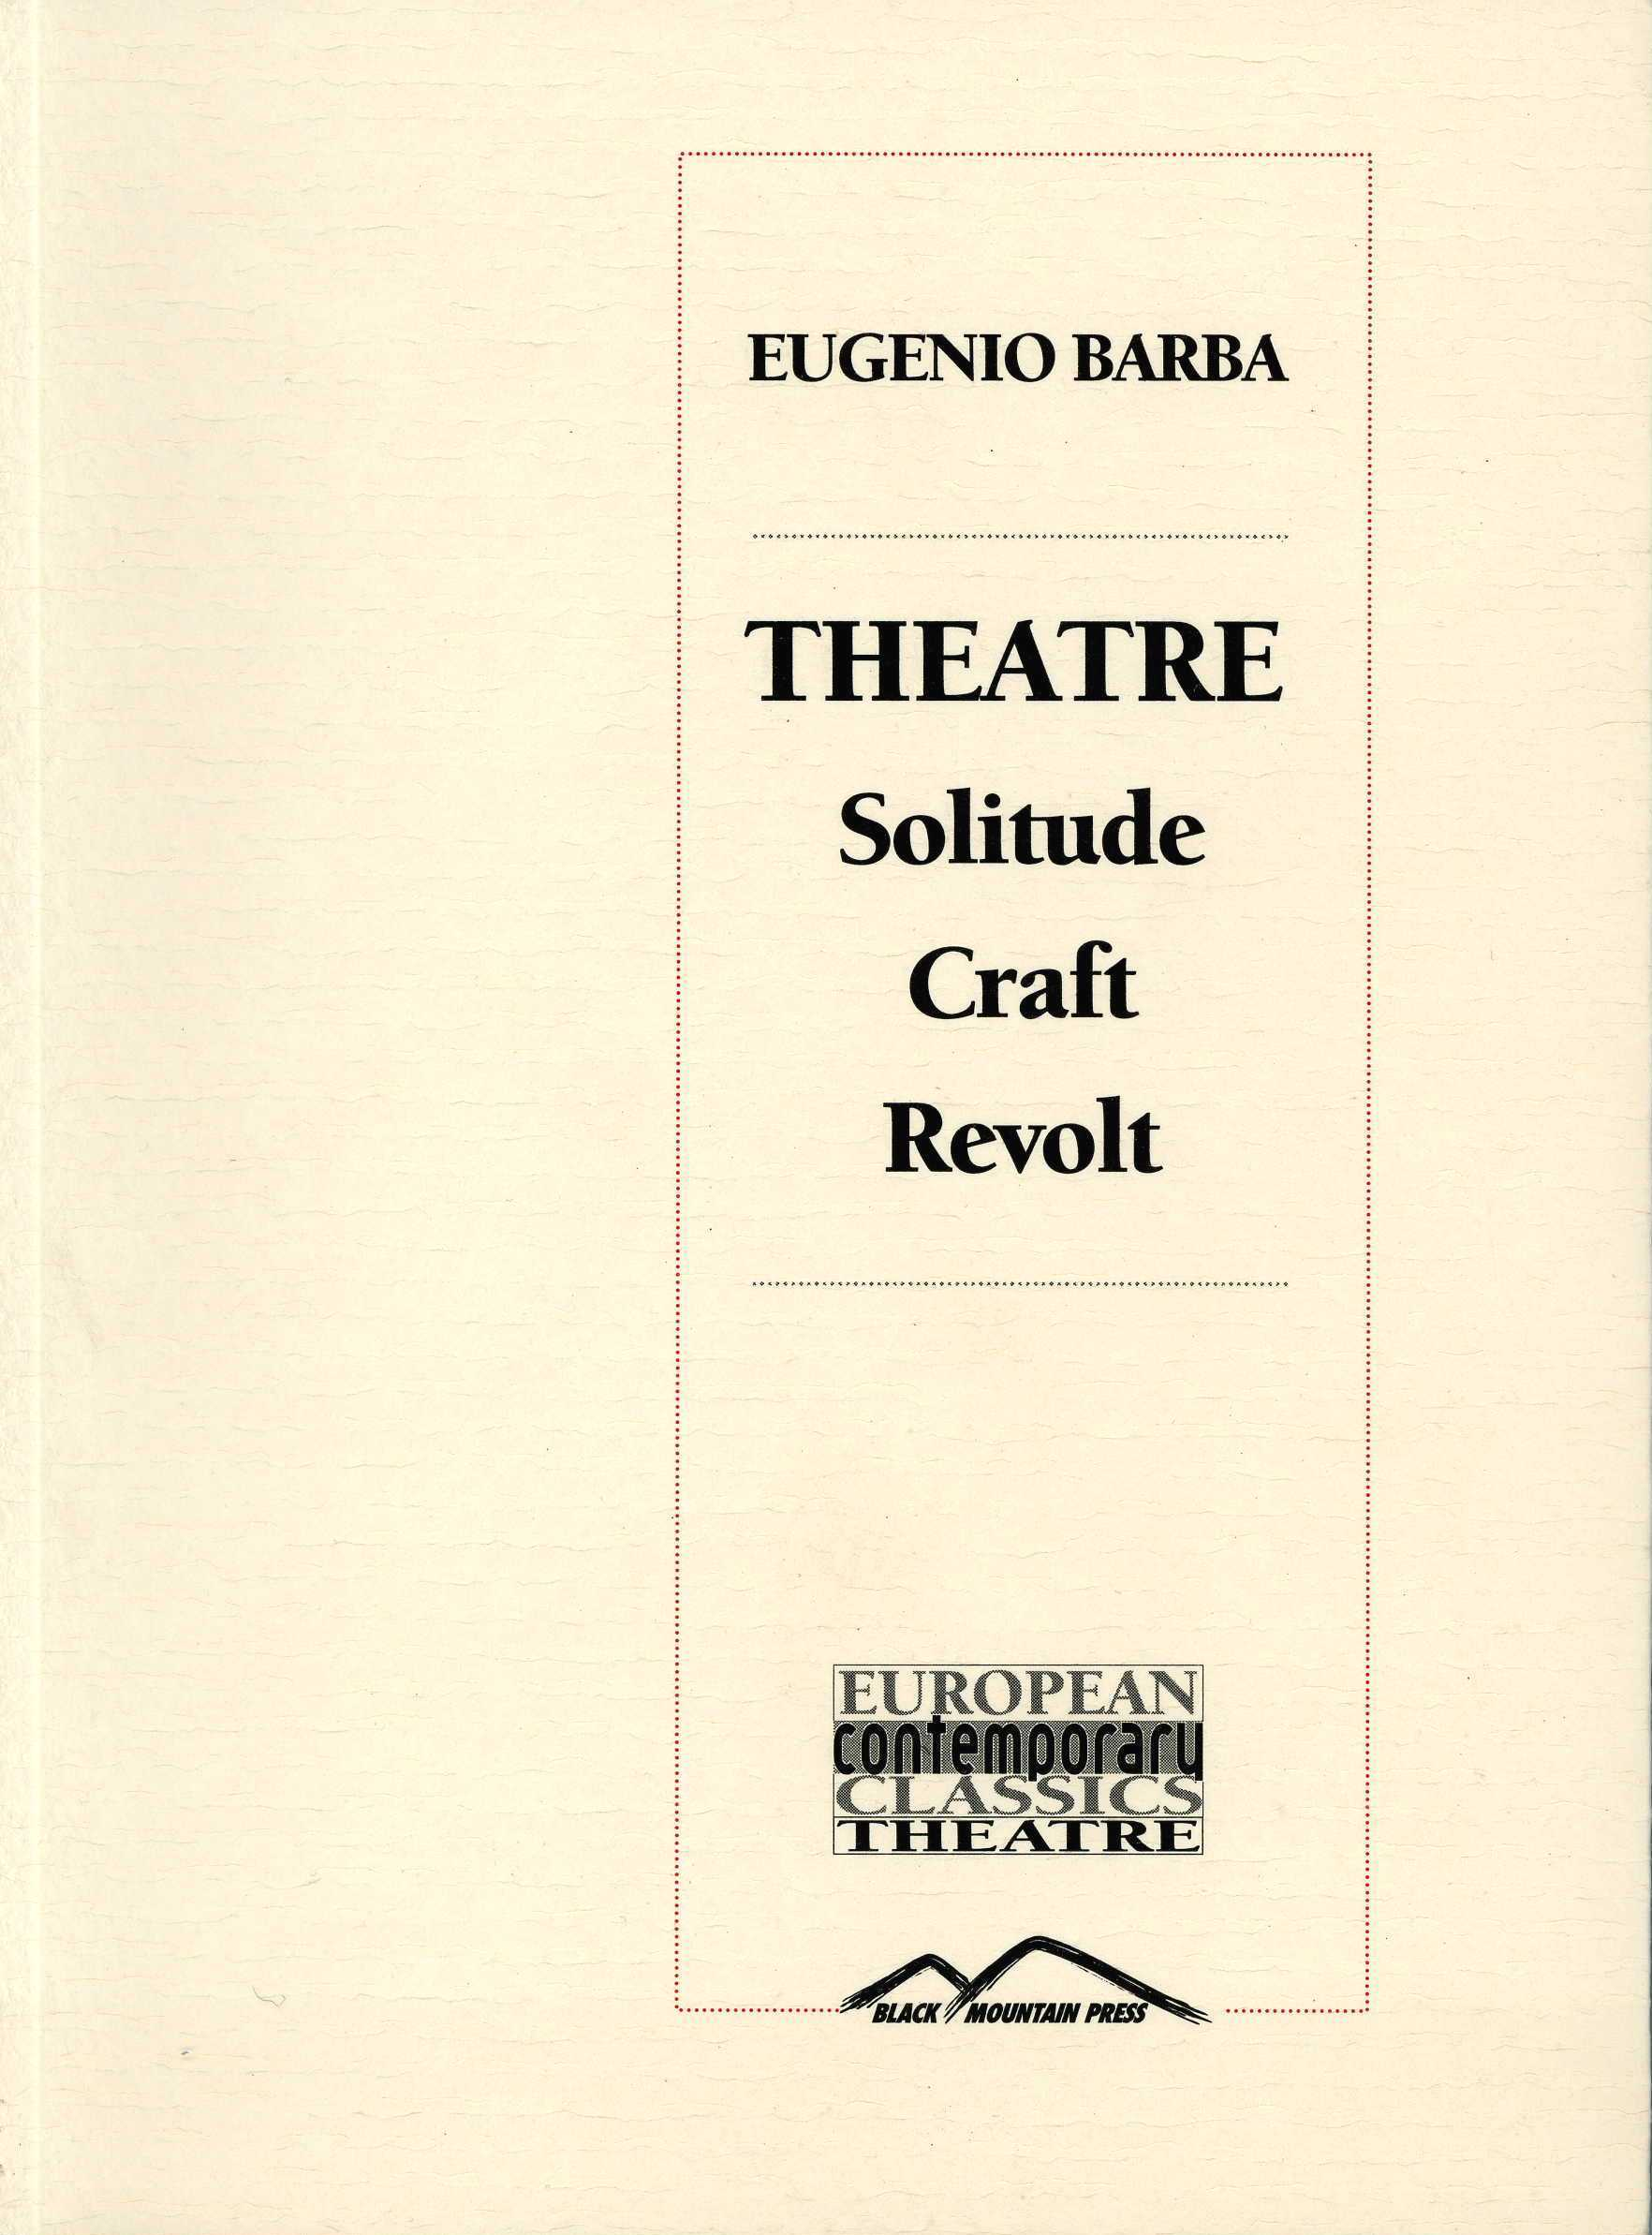 Theatre Solitude Craft Revolt